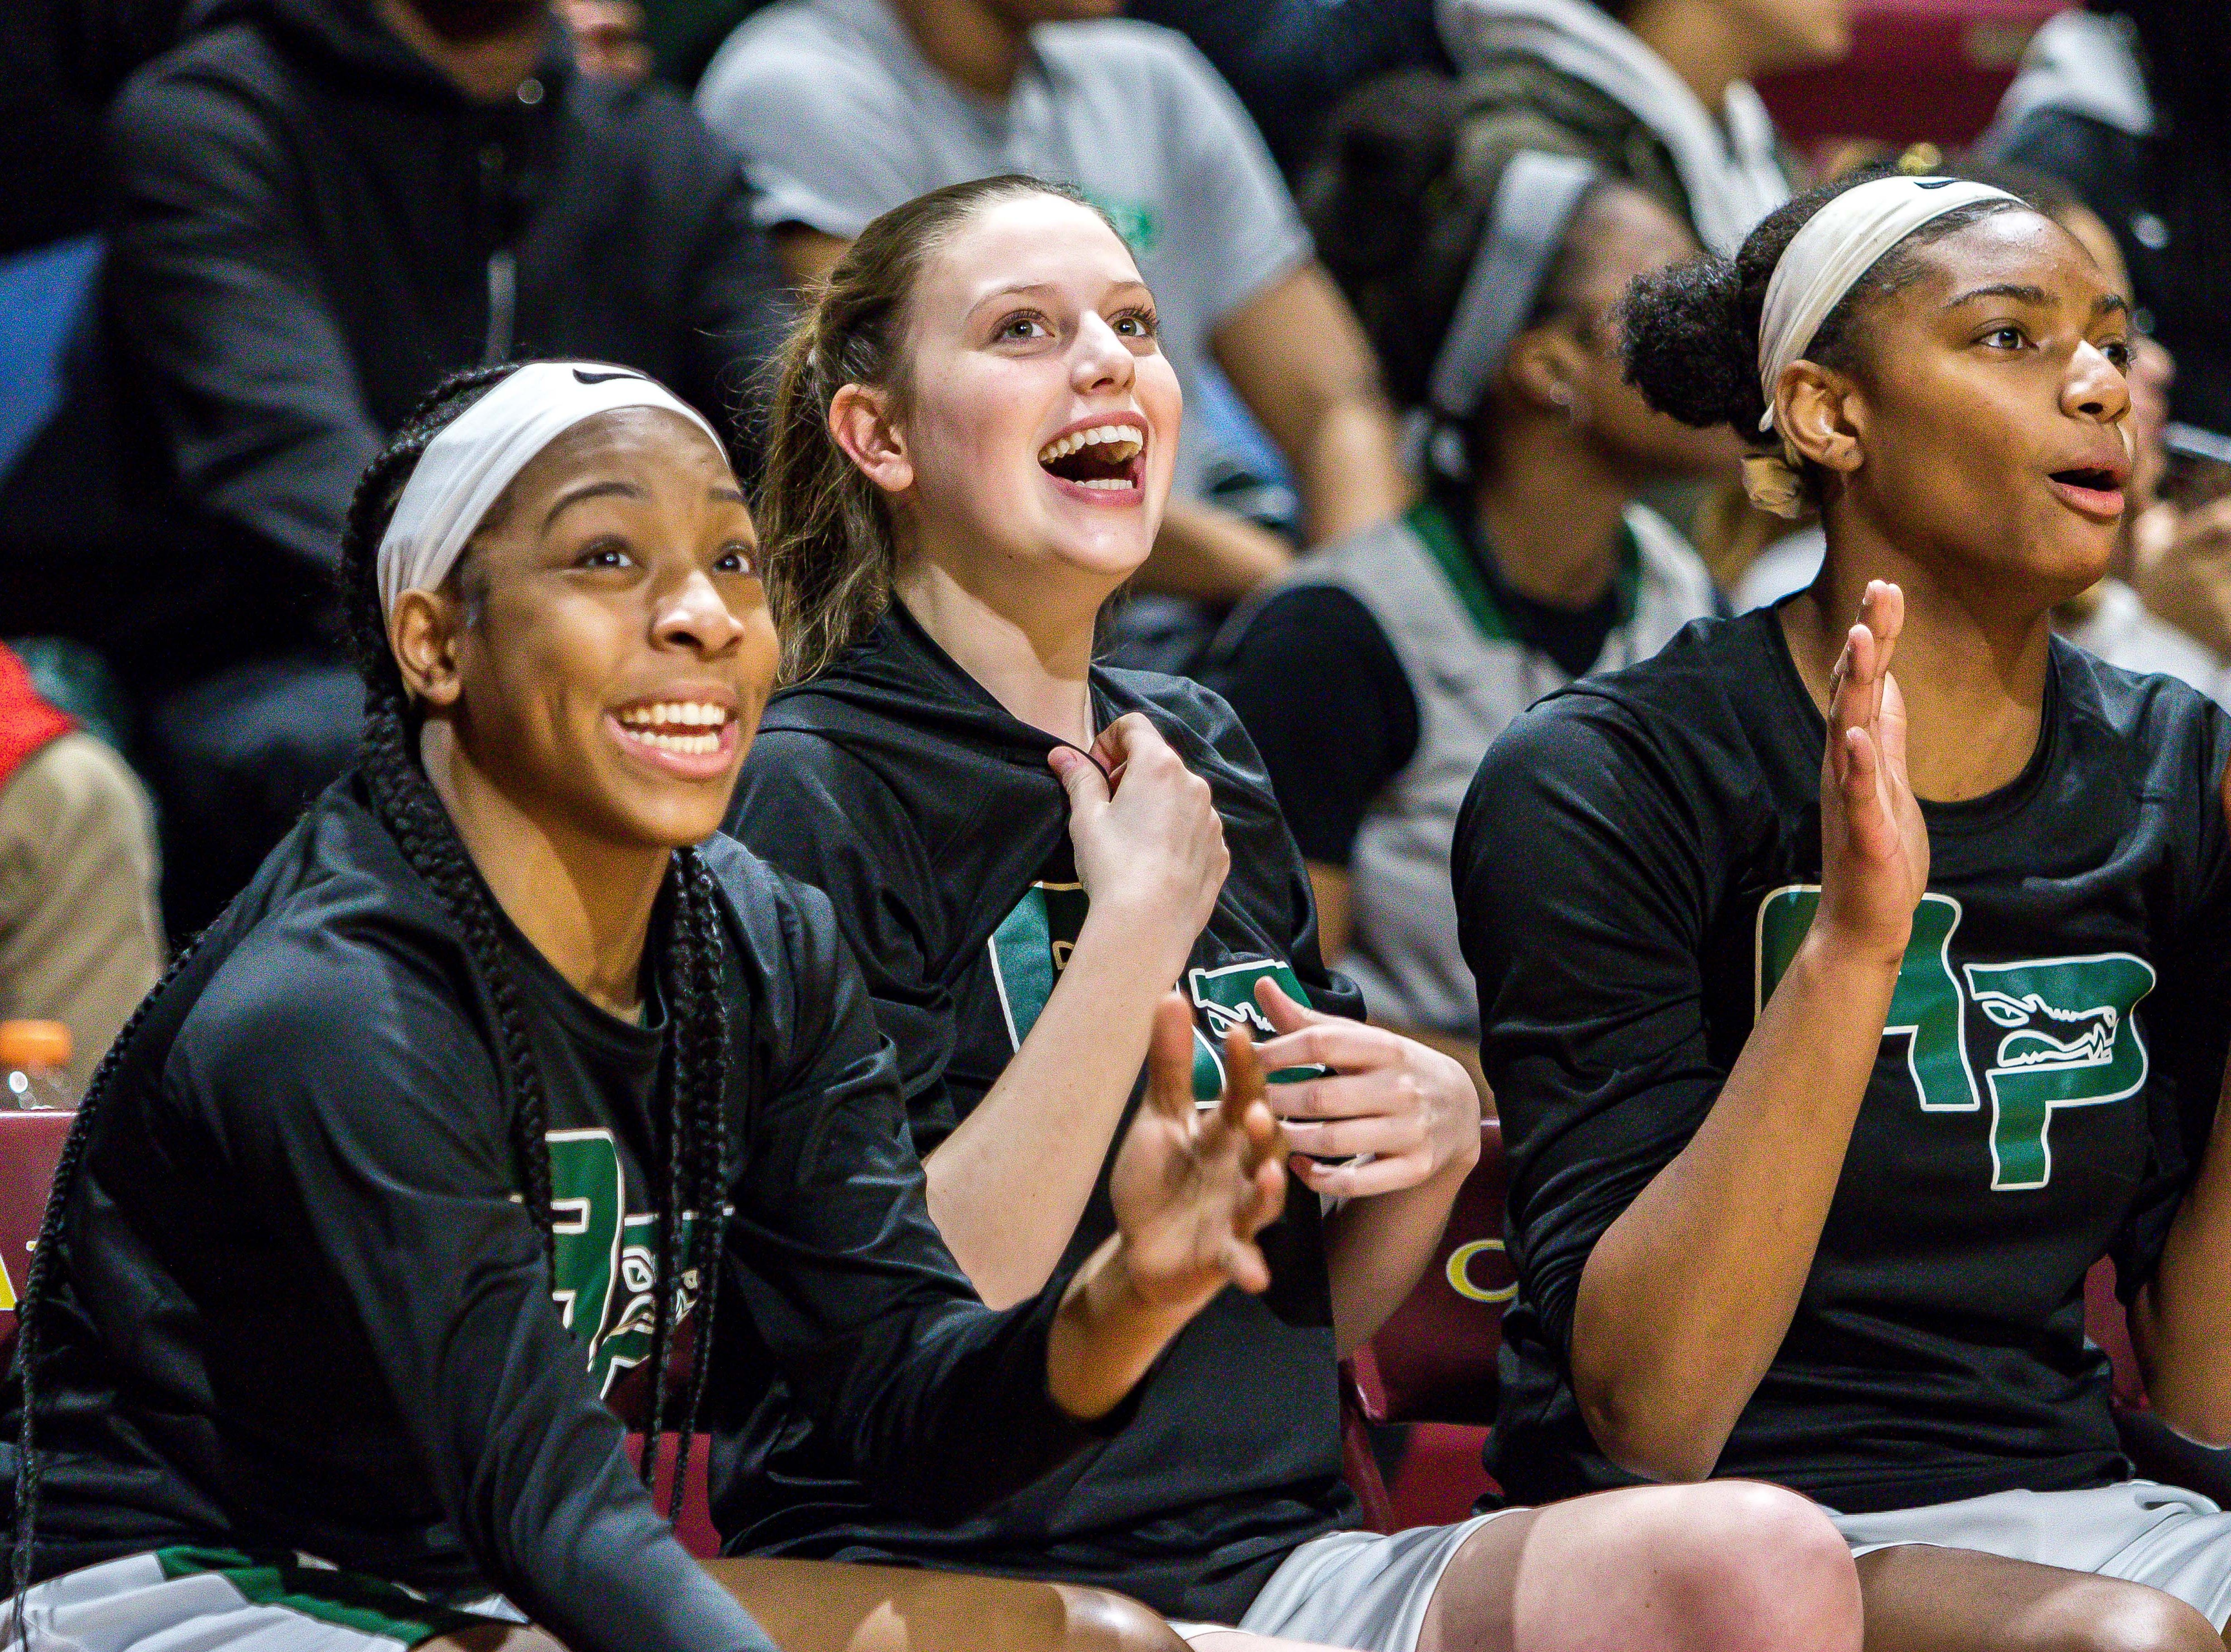 Ypsilanti Arbor Prep's bench reacts as they tie the game late in the second half.